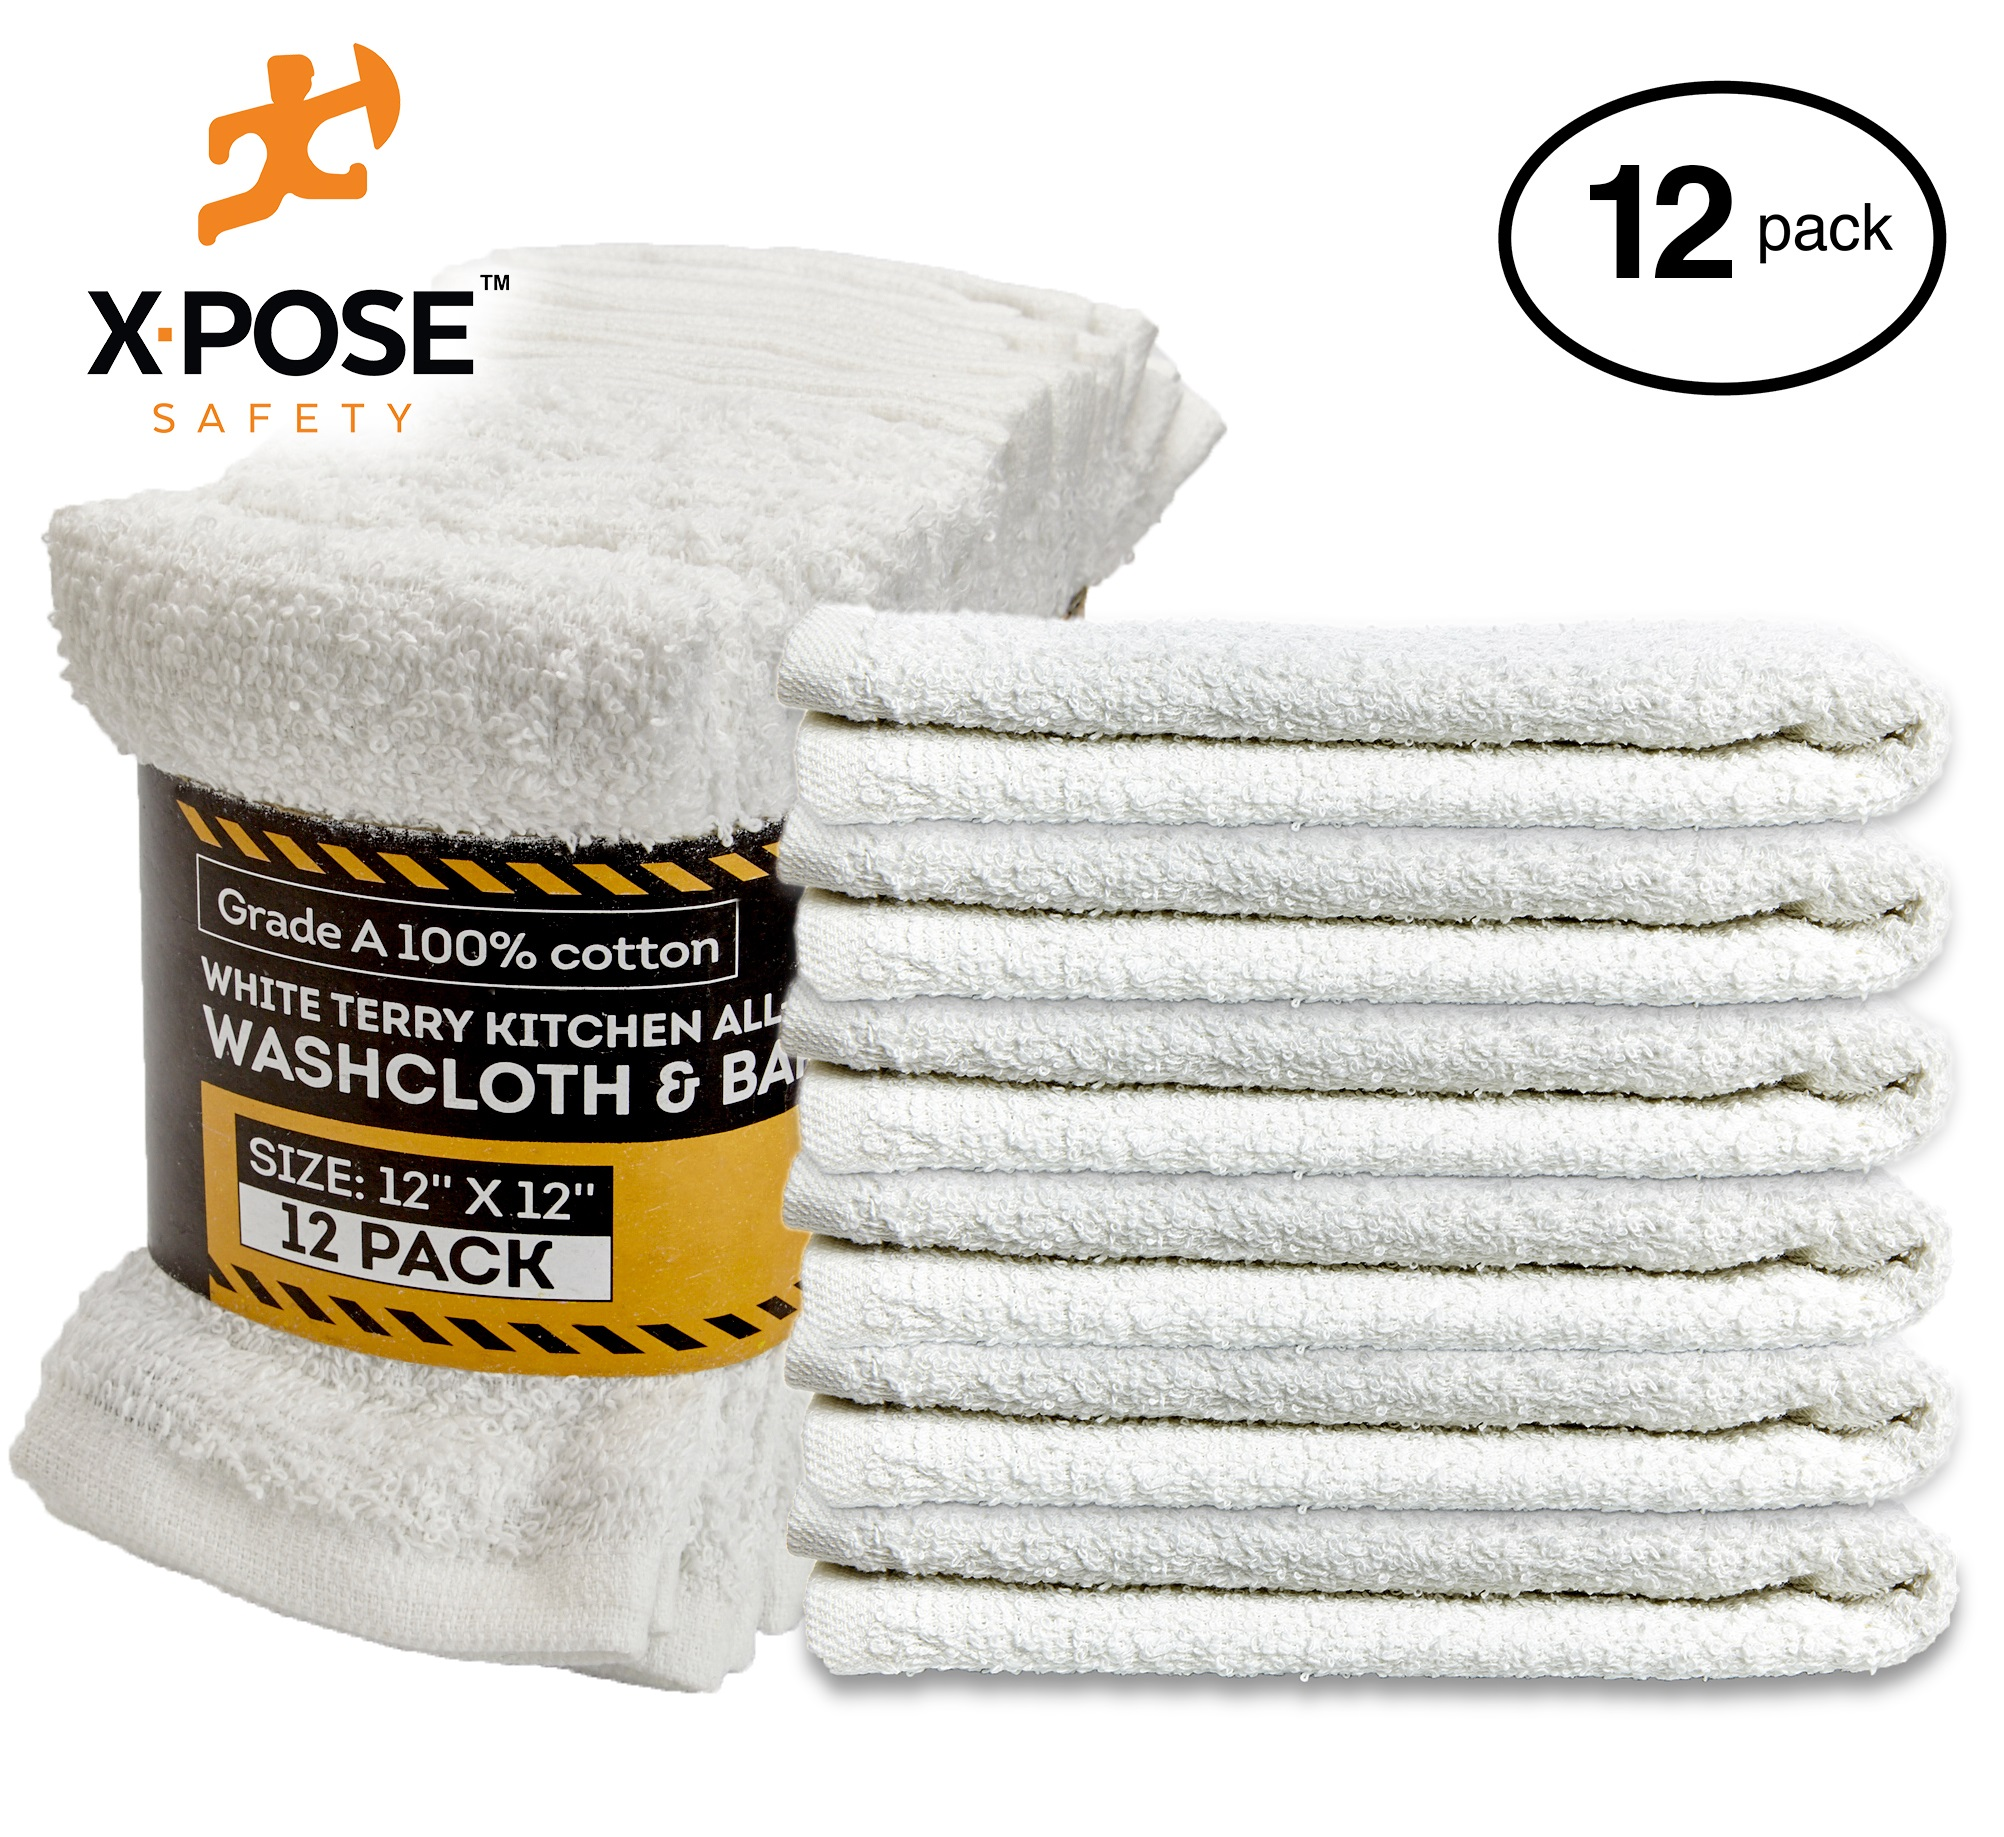 "Bar Mop Towels 12 Pack - Terry Cloth Cotton - Premium Quality Absorbent Home, Kitchen and Restaurant White Cleaning Rags - 12"" x 12"" - by Xpose Safety"